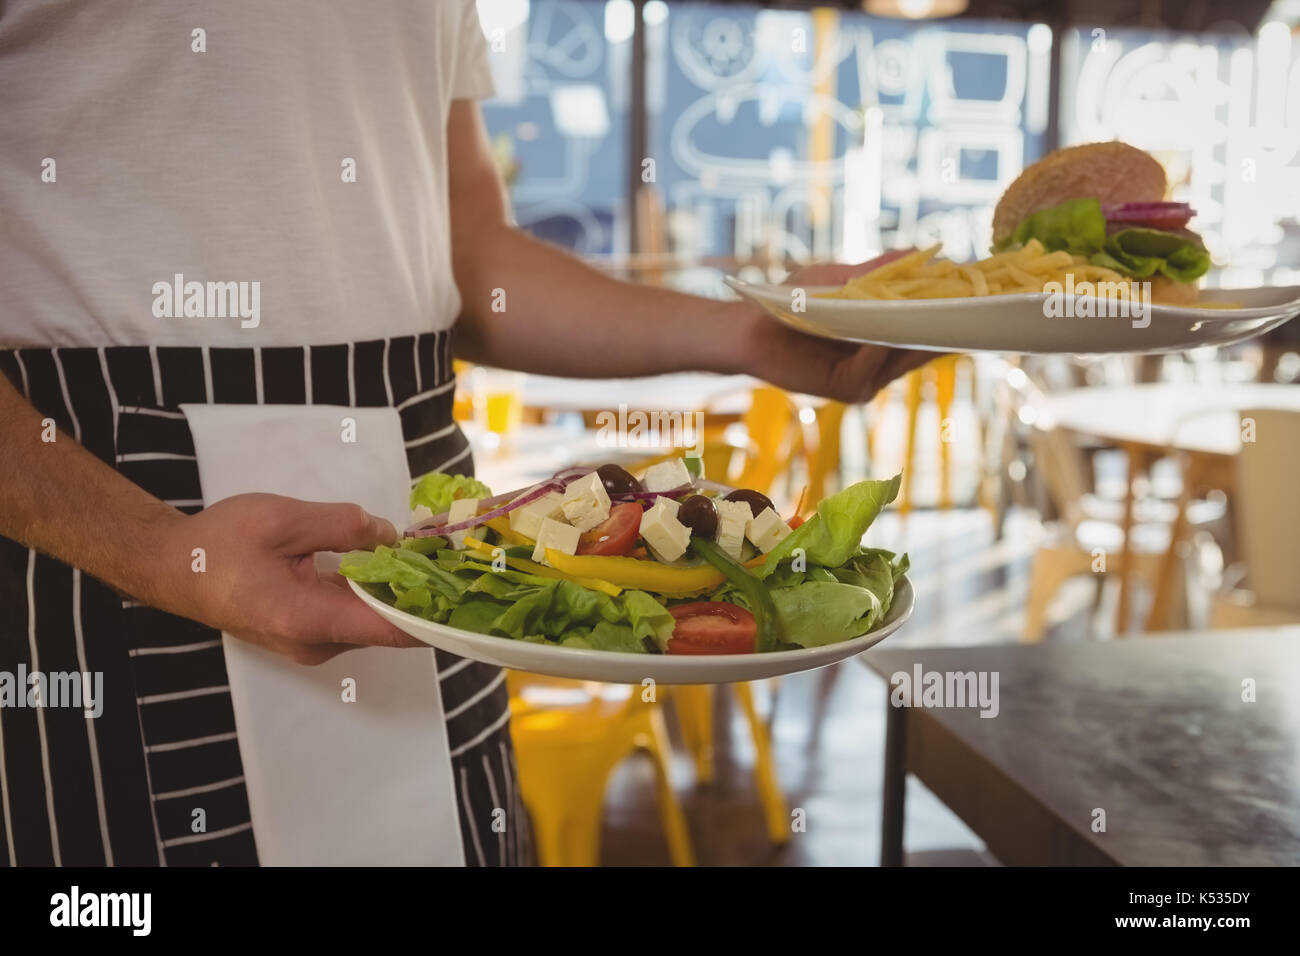 Mid section of waiter serving salad and French fries with burger in cafe - Stock Image